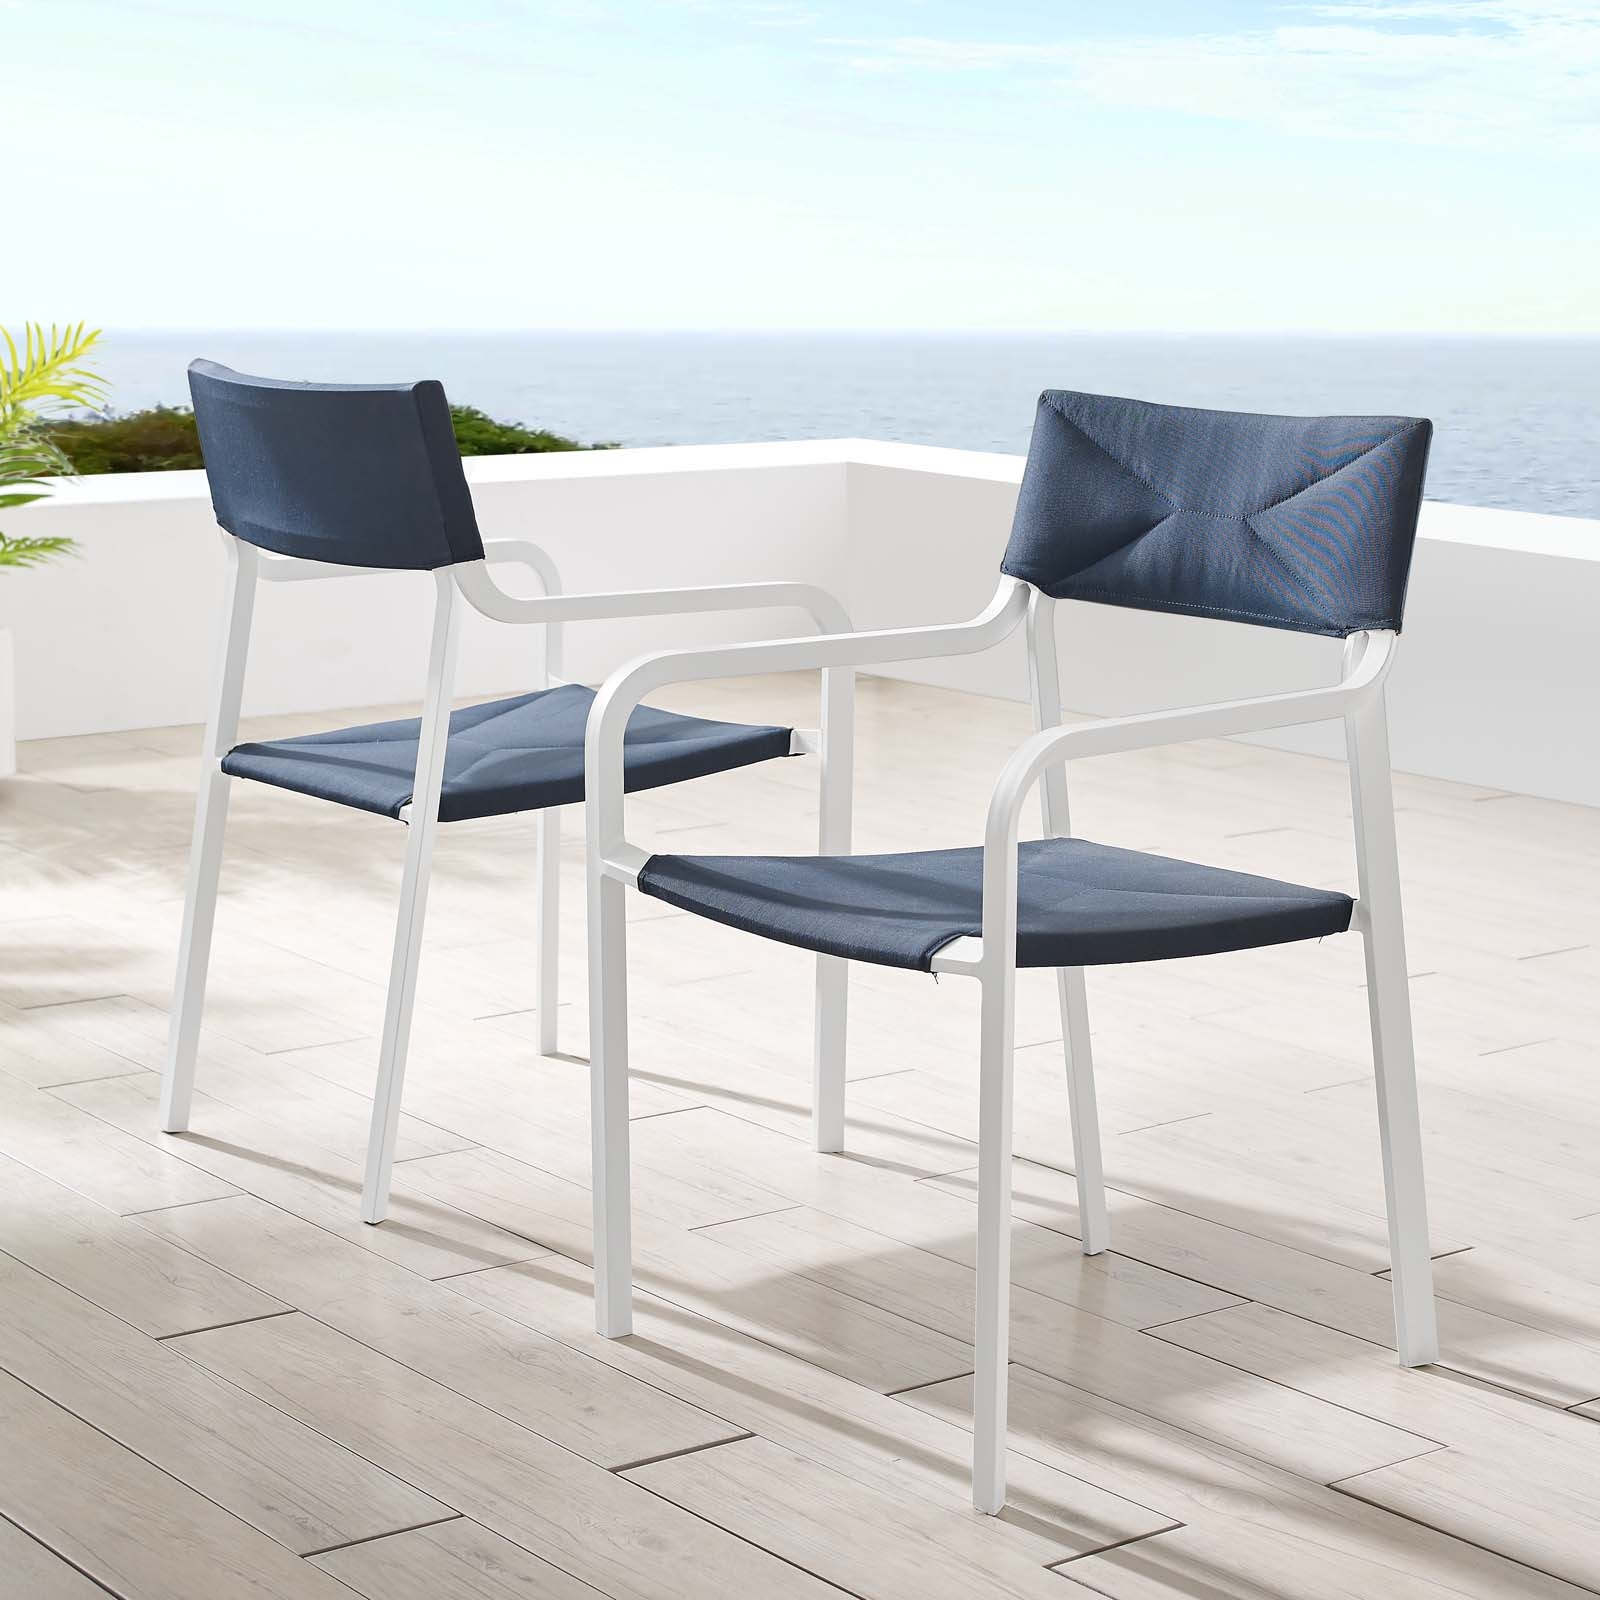 Raleigh Outdoor Patio Aluminum Armchair Set of 2 in White Navy